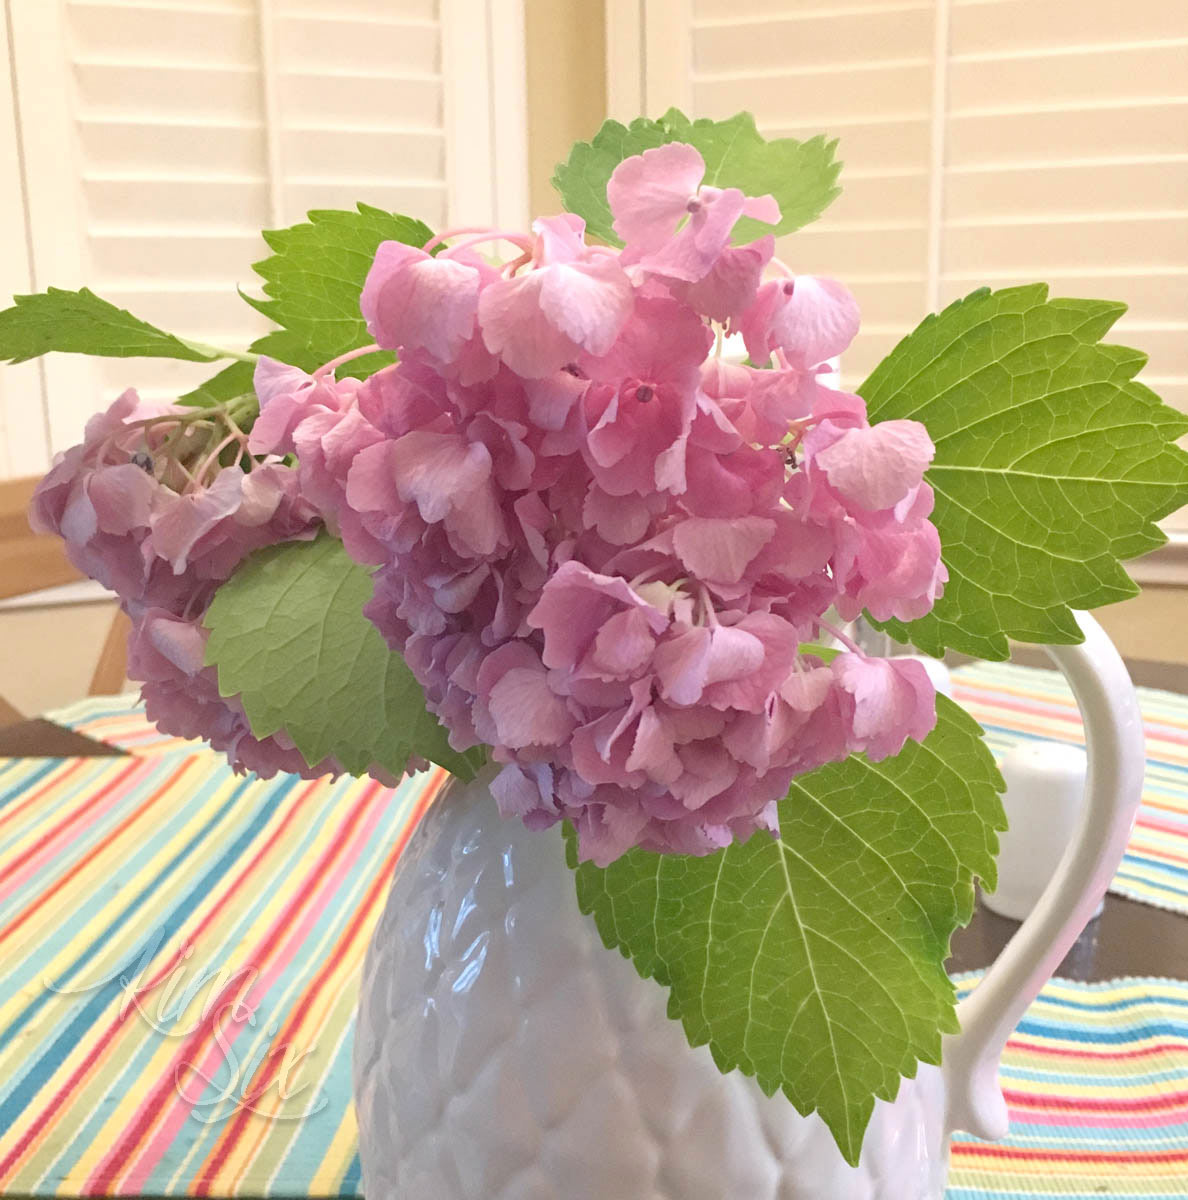 How to perk up dying hydrangeas